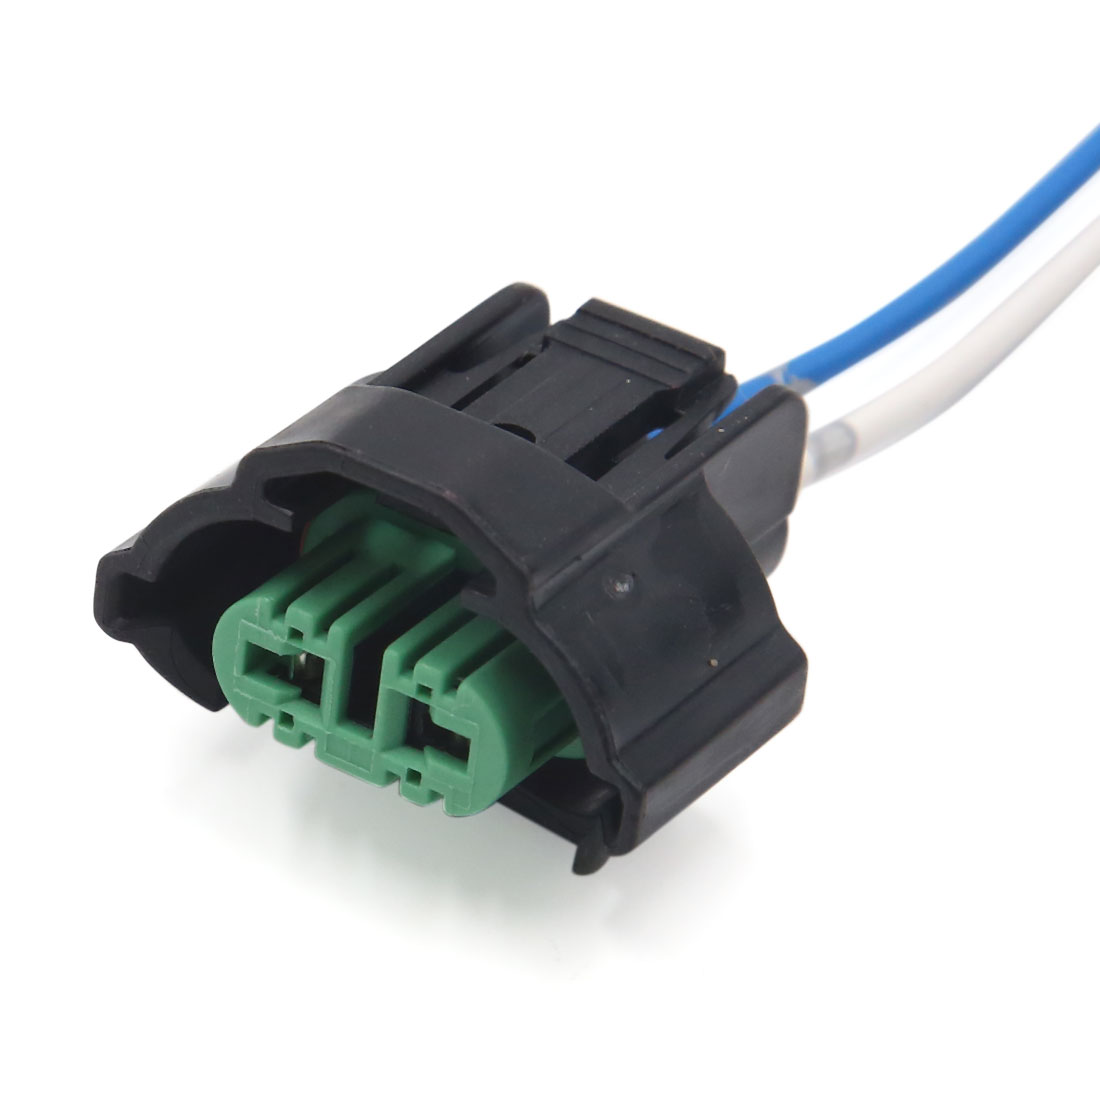 medium resolution of h11 bulb 2 wire car driving light headlamp wired harness socket connector